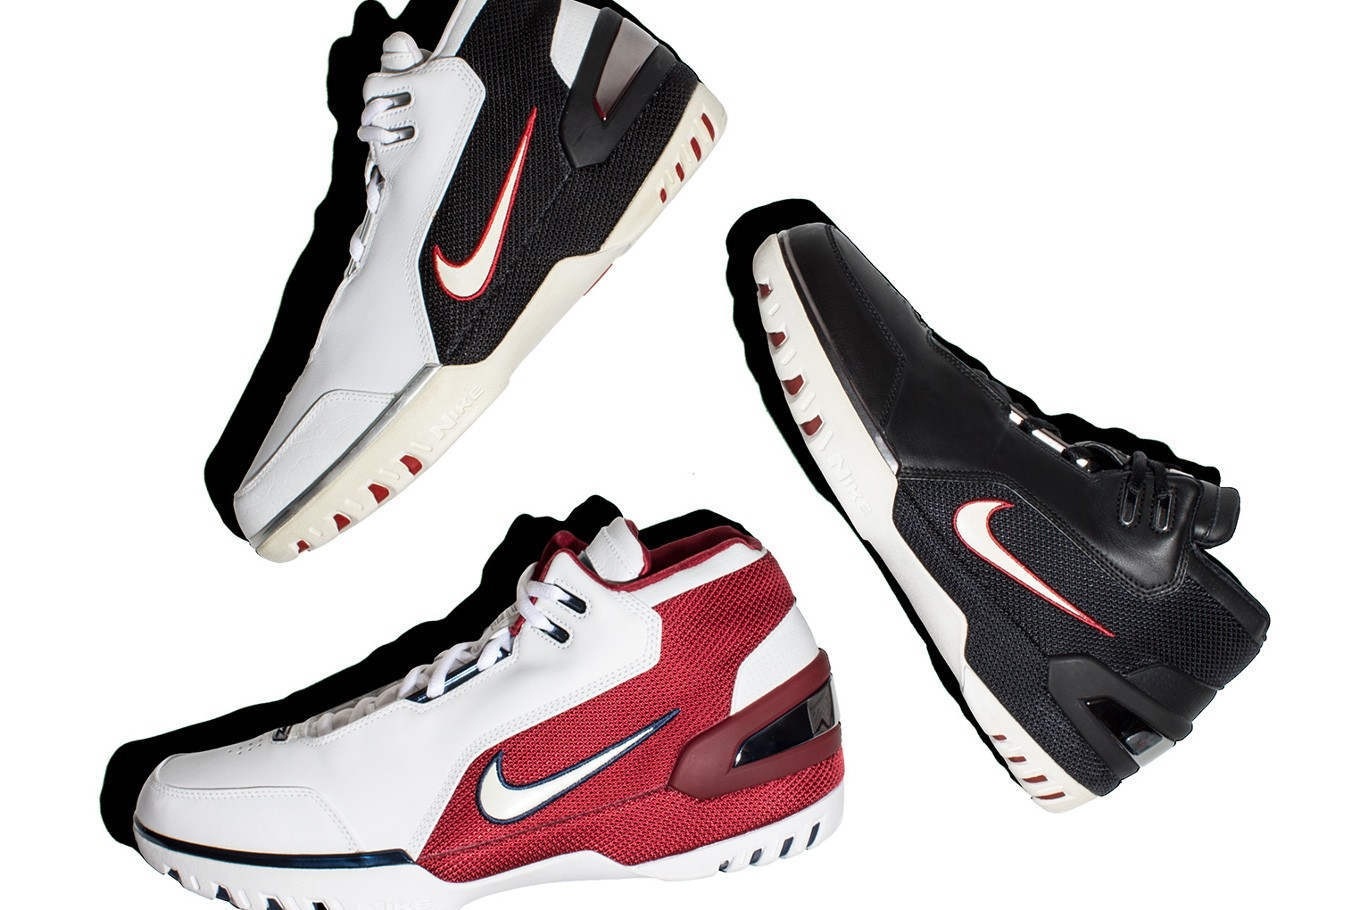 2586801bc8dd Nike brings back LeBron James  first signature shoes - Lifestyle ...